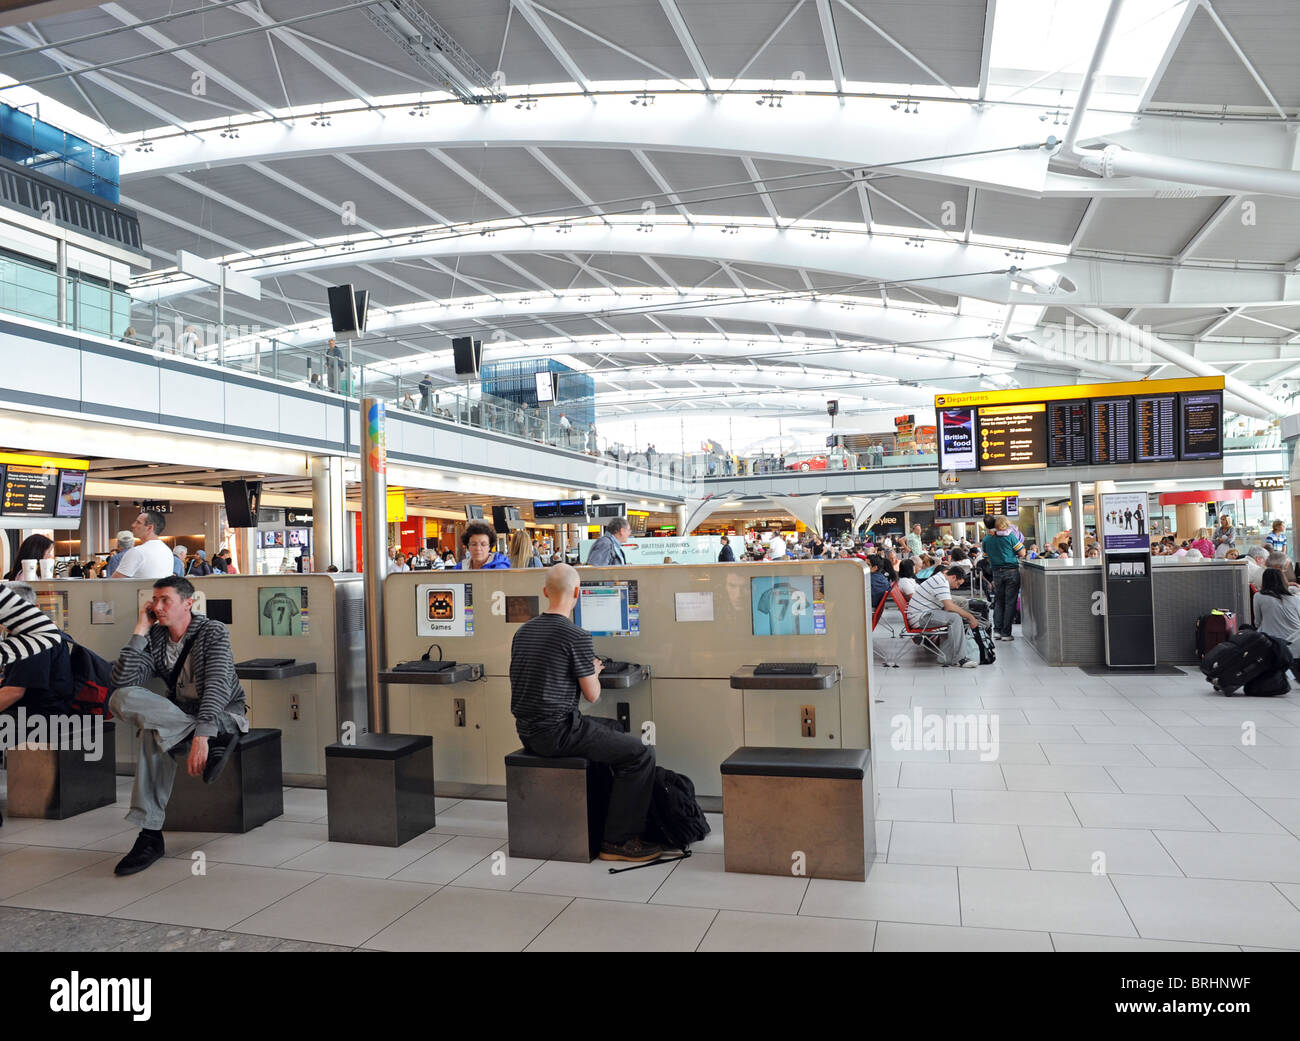 The departures hall in Heathrow's Terminal 5 - Stock Image